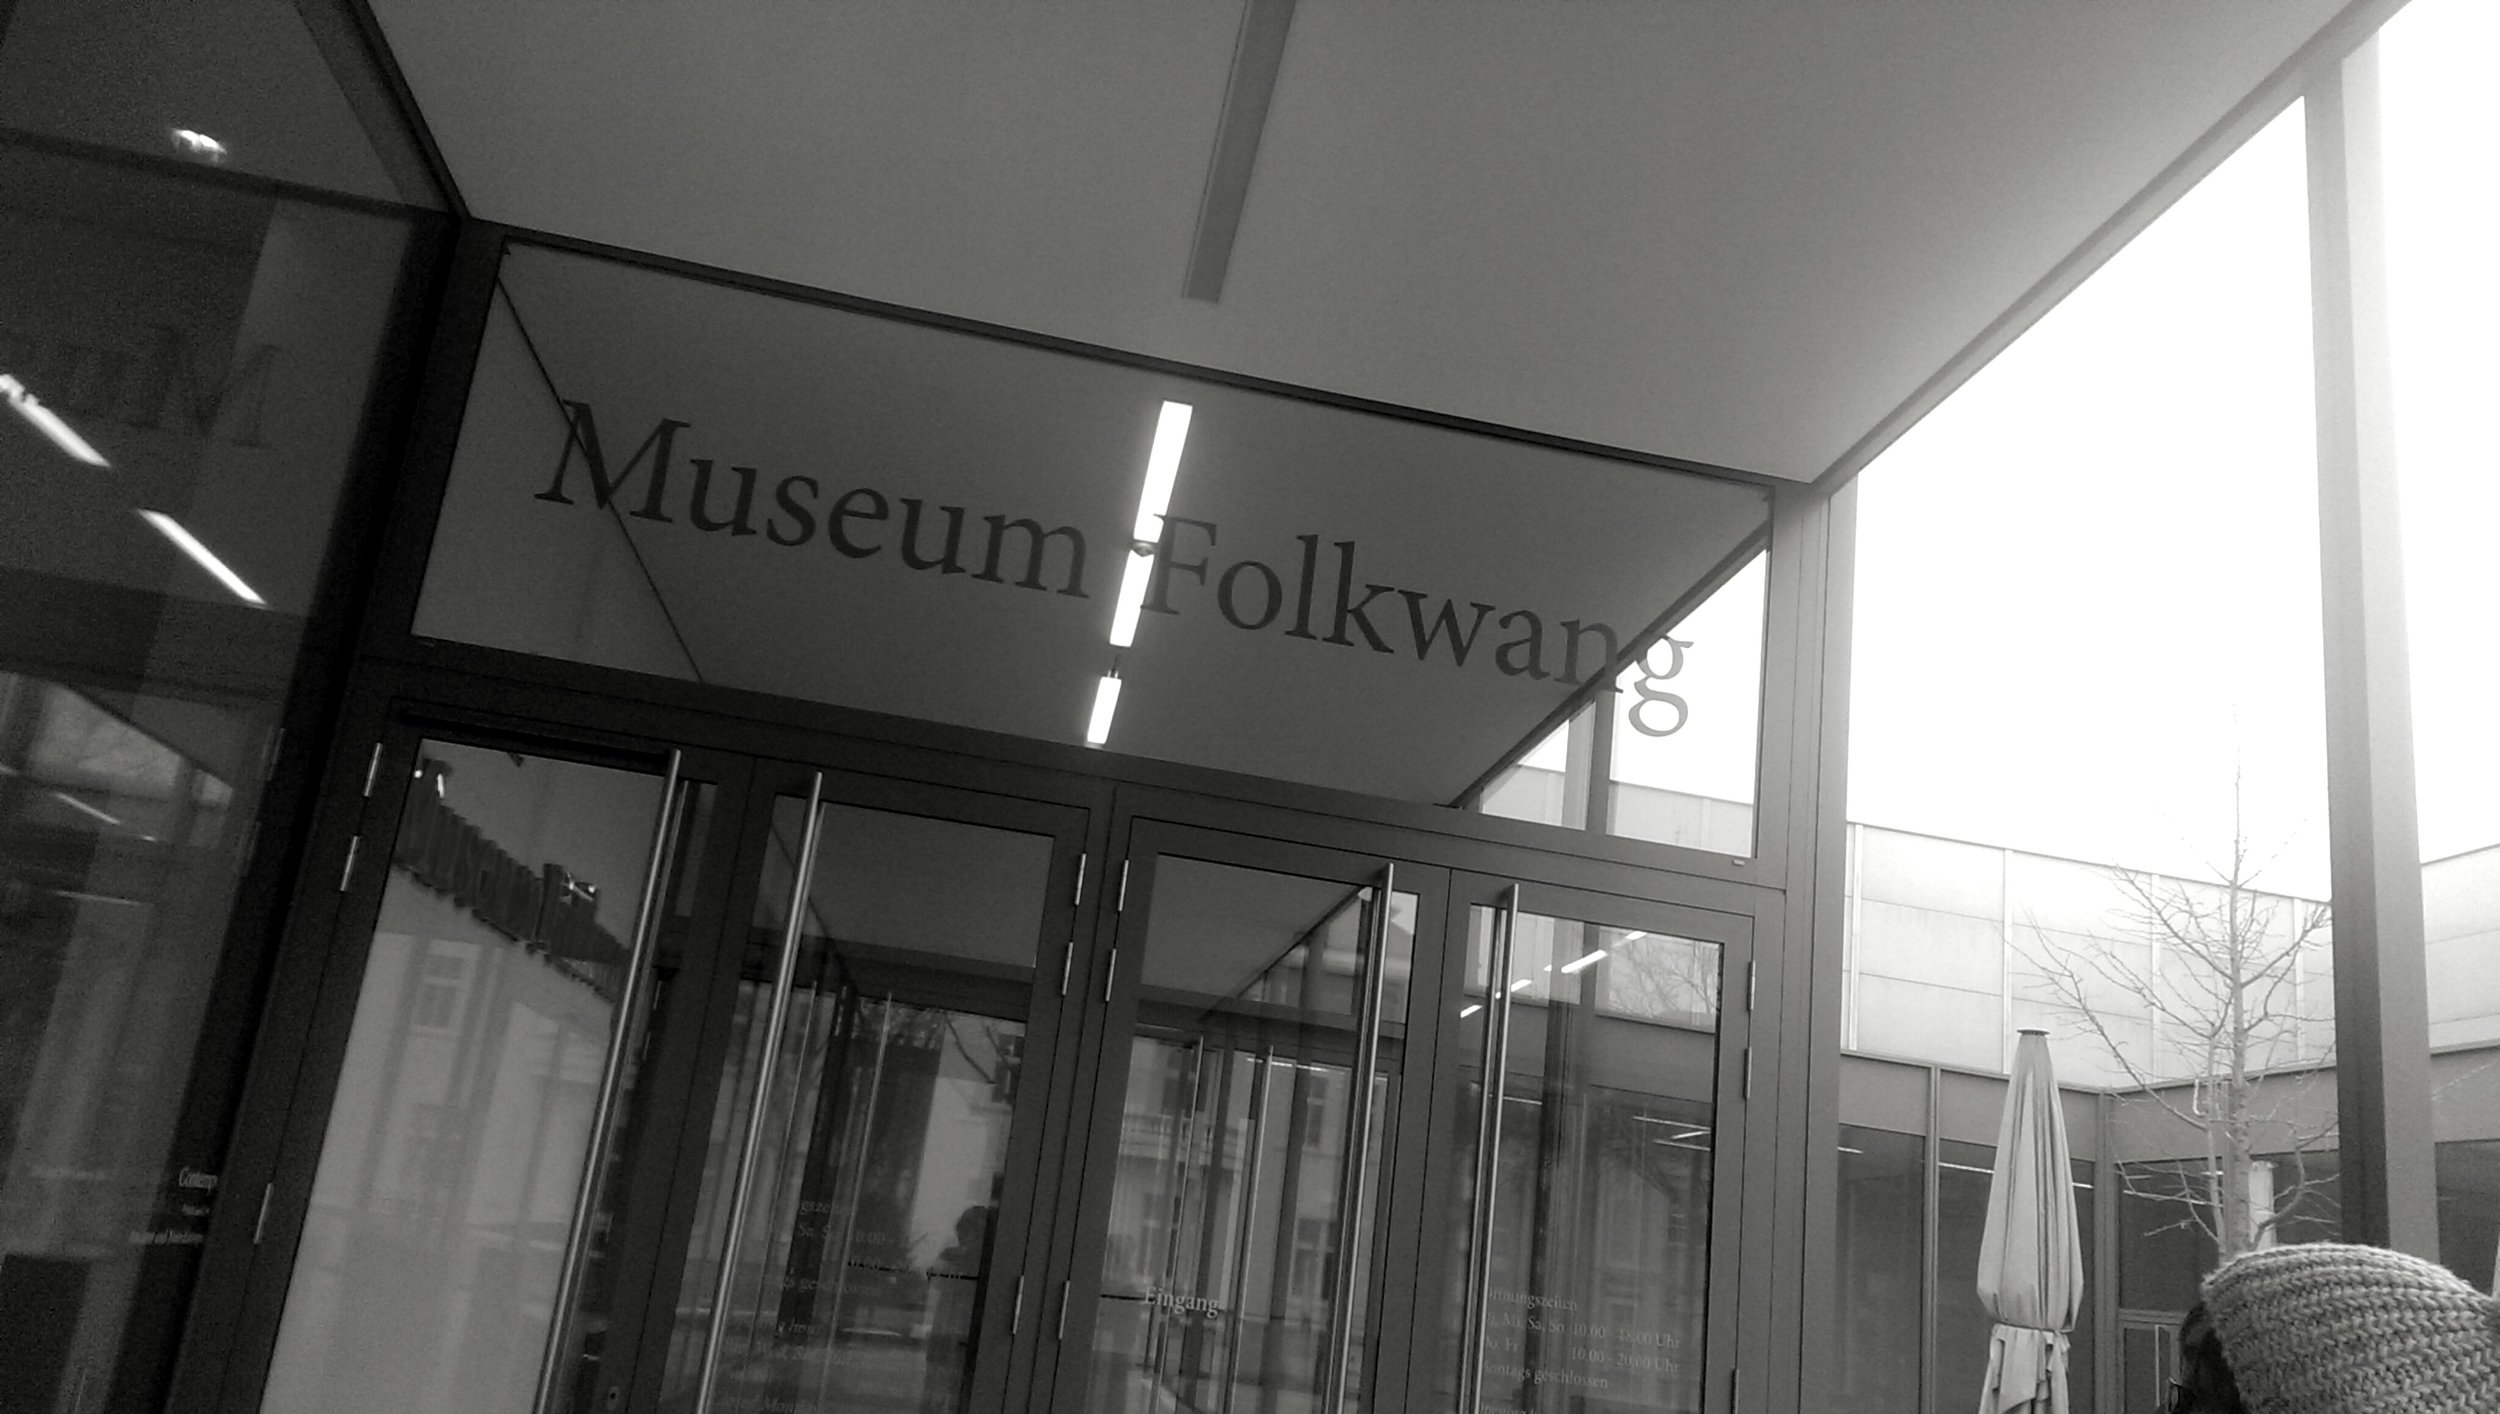 OK, now we're on the other side of Germany, in Essen. The  Museum Folkwang has a varied collection - including, at the time, an exhibition of the photography of  Otto Steinert .